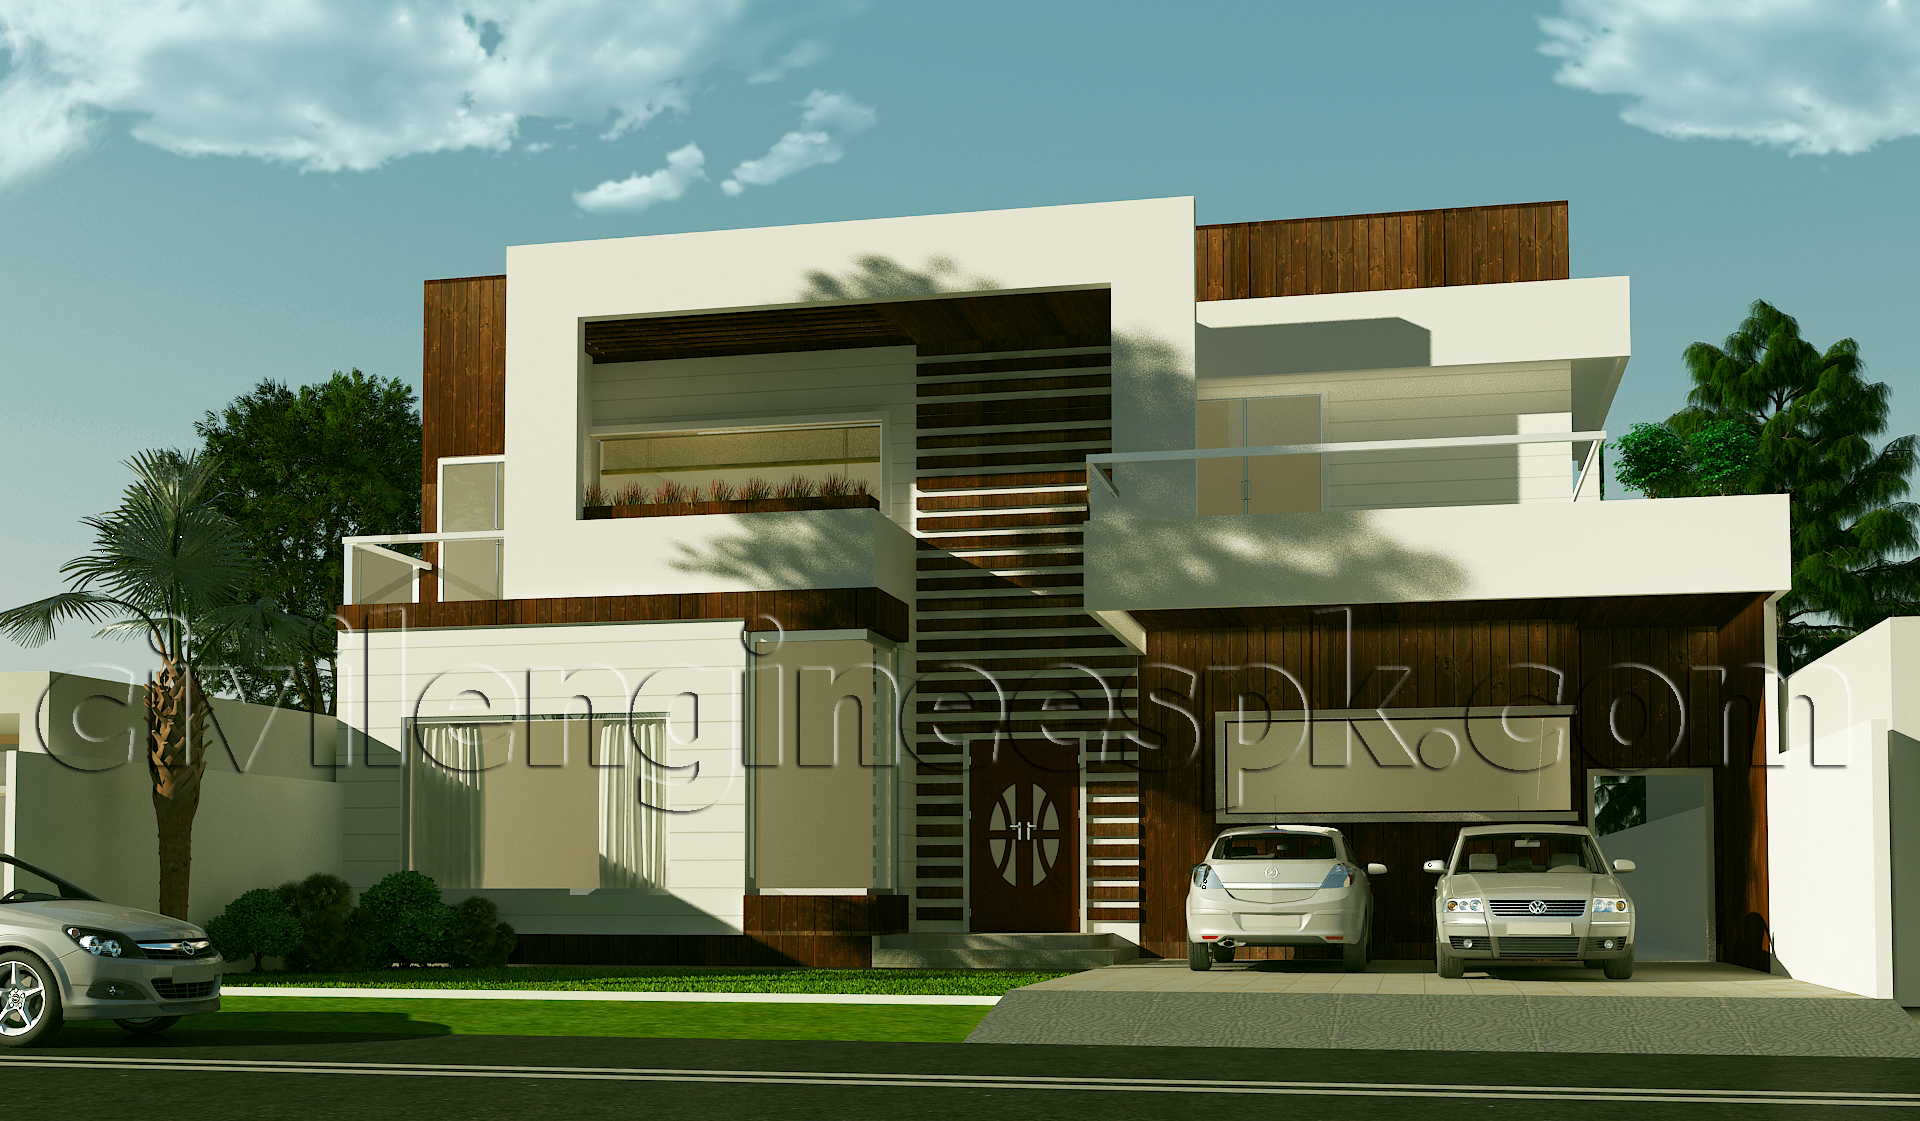 New 1 kanal house plan civil engineers pk House plan 3d view